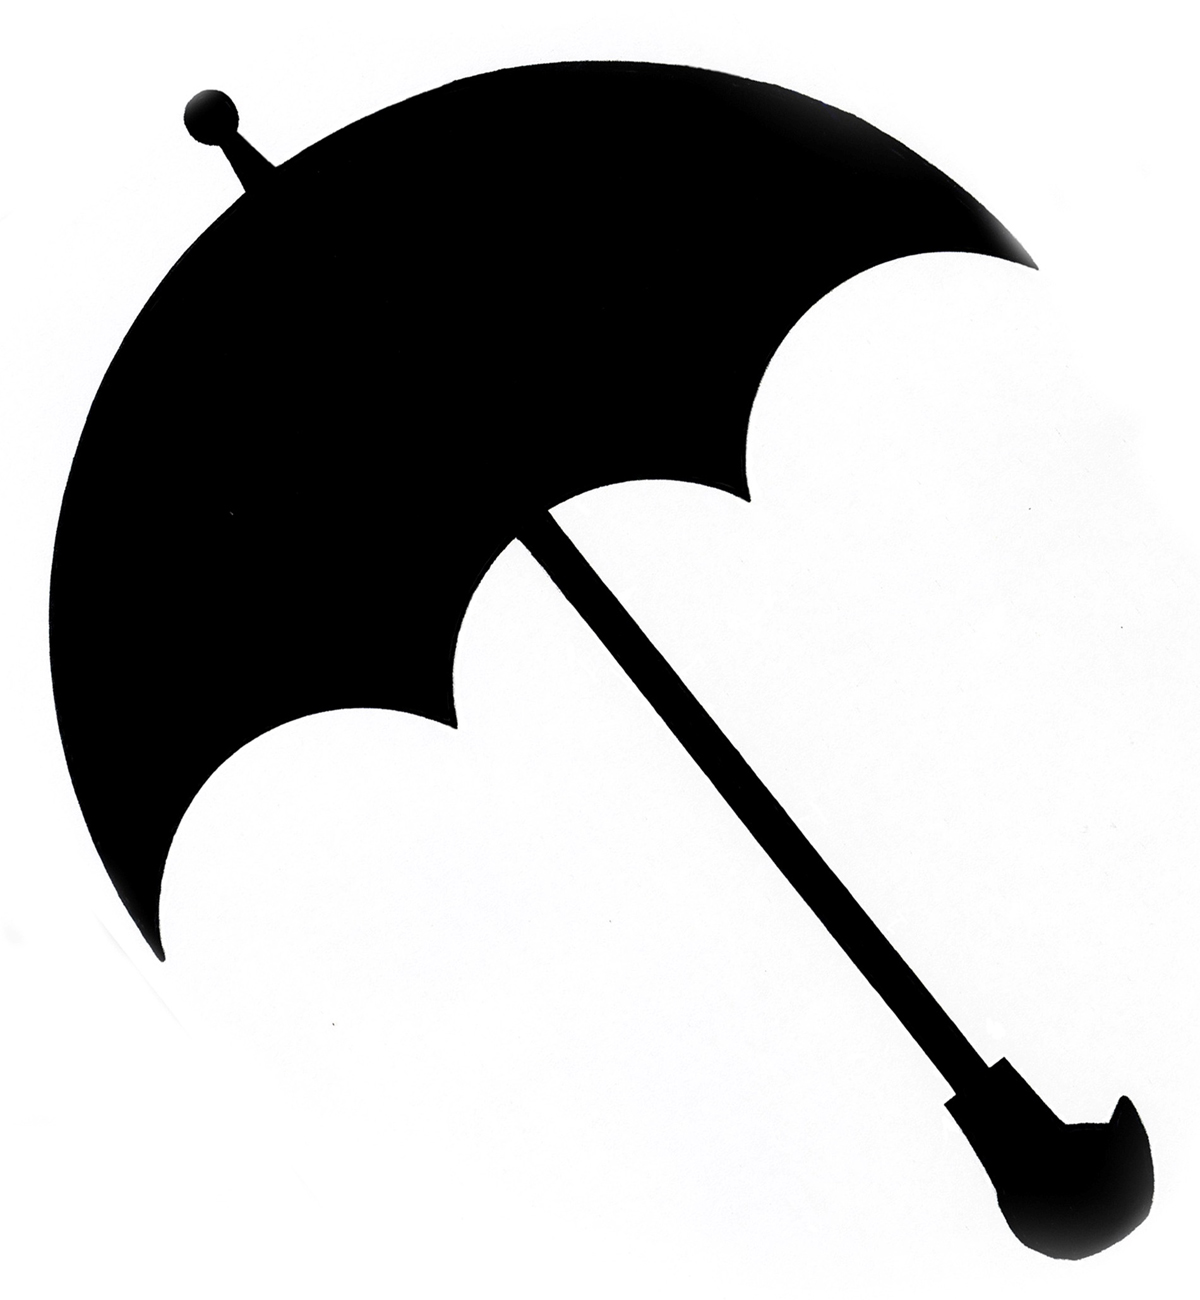 Mary poppins hat clipart image freeuse download Free Mary Poppins Hat Silhouette, Download Free Clip Art, Free Clip ... image freeuse download